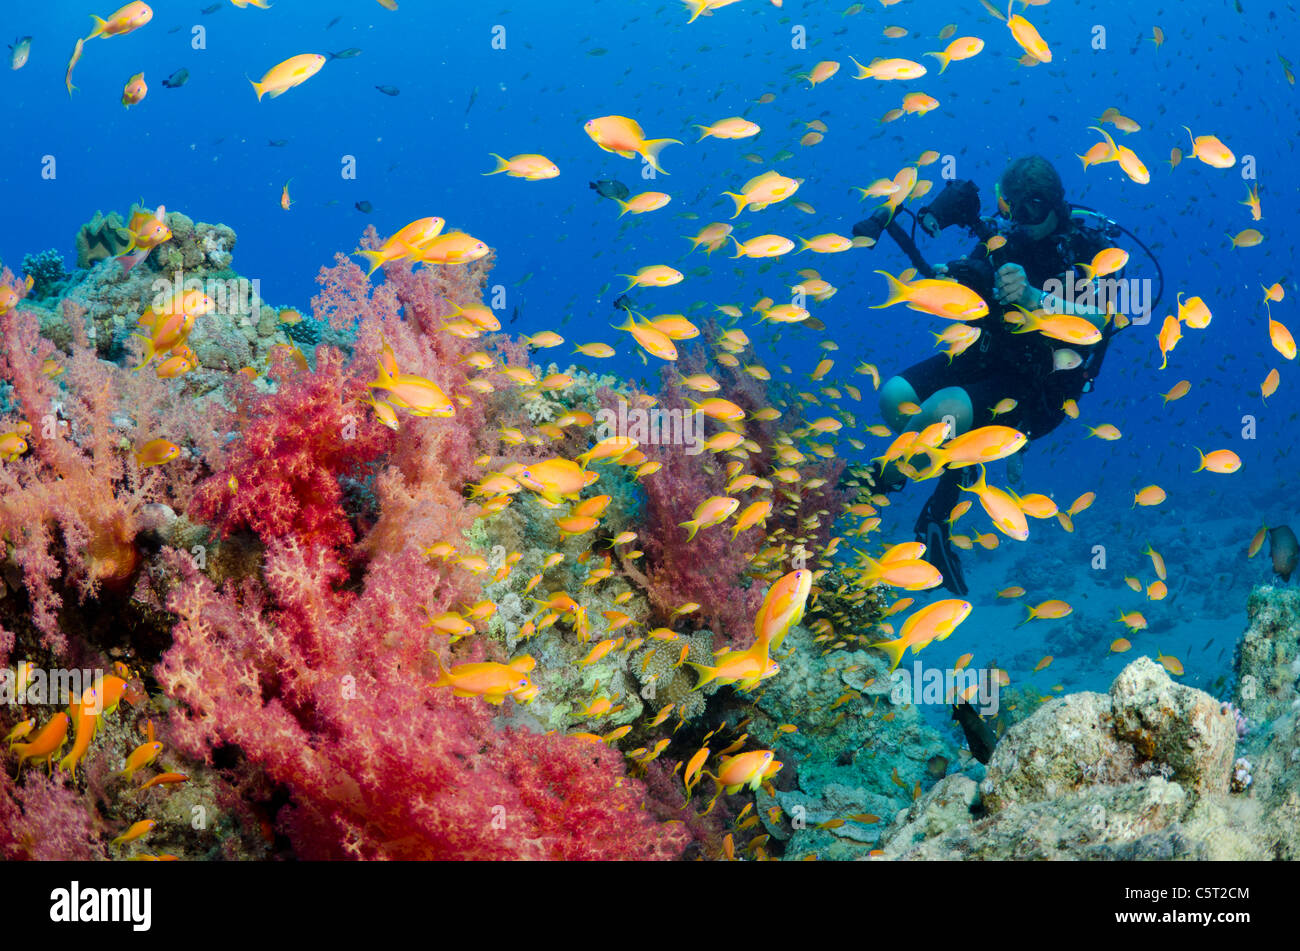 Soft coral patch with schooling Anthia fish and scuba diver, Nuweiba, Sinai, Red Sea, Agypt, Africa - Stock Image